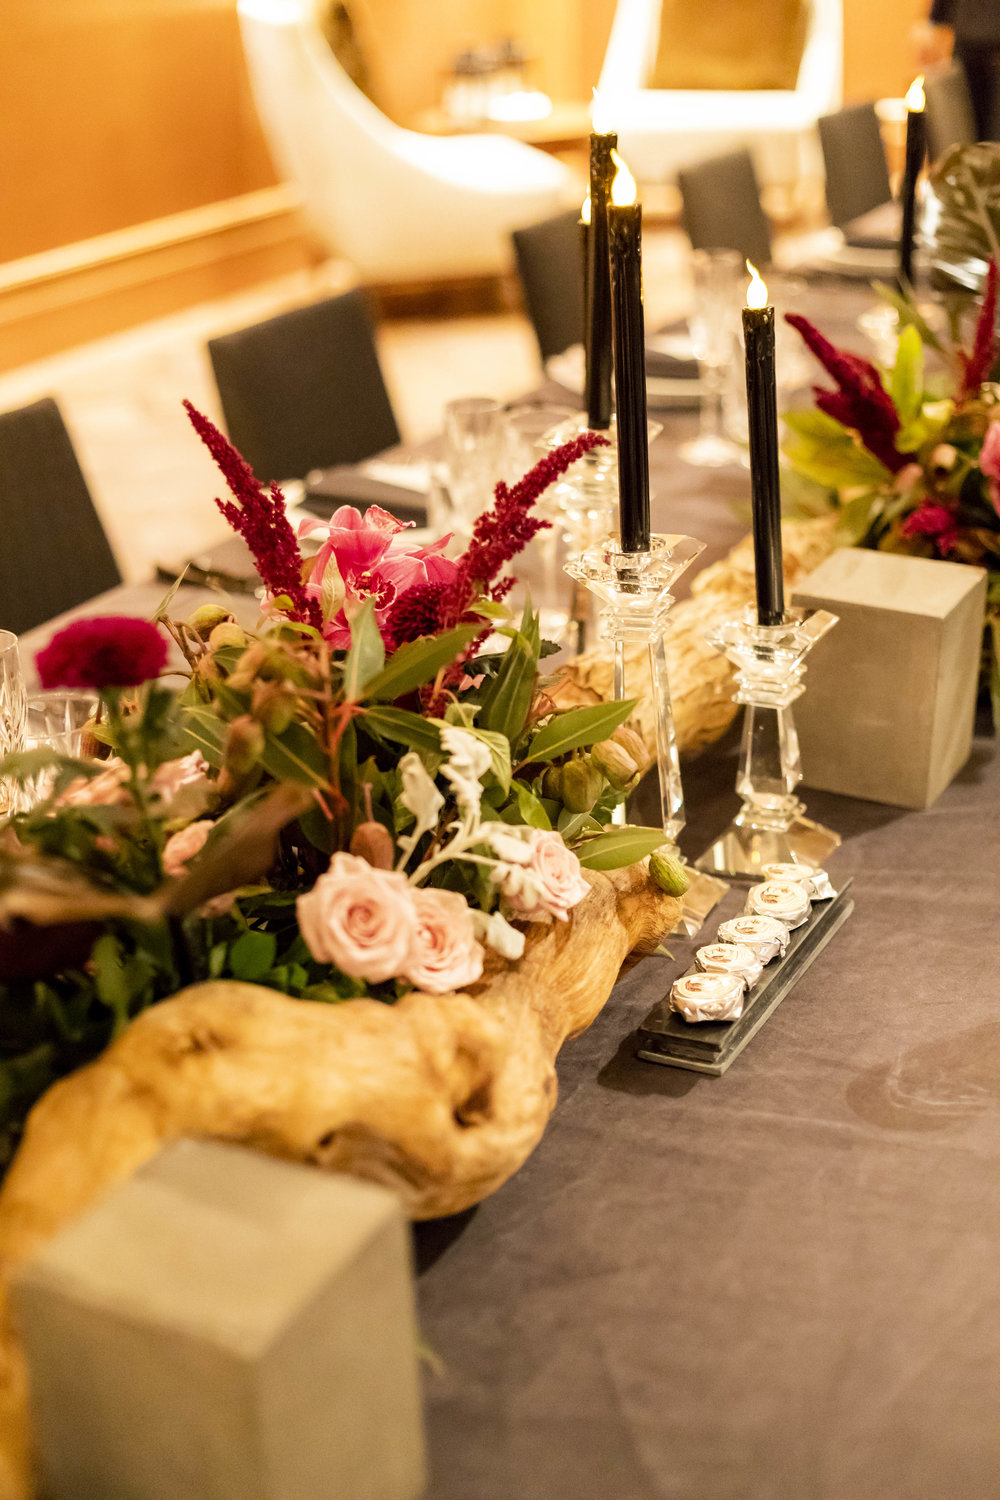 Corporate_dinner_event_design_Sydney_Inlighten_Photography_flowers_charger_plates_black_cutlery_events_by_nadia_2.jpg